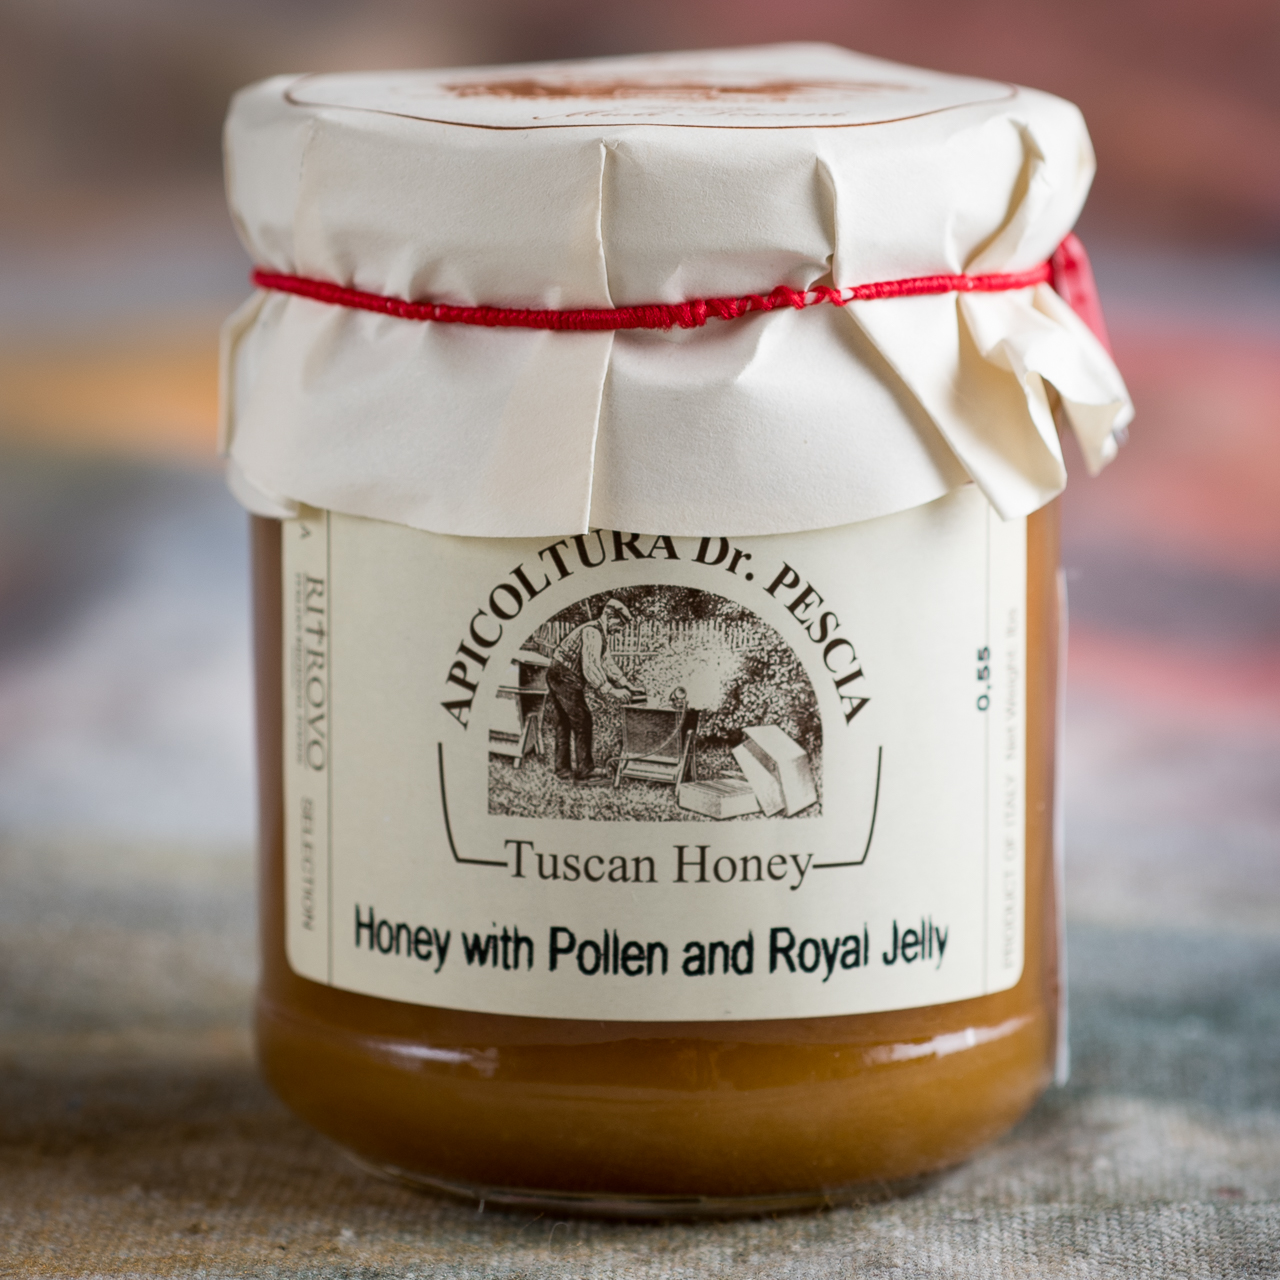 Les Ruchers de Bougogne Royal Jelly Honey